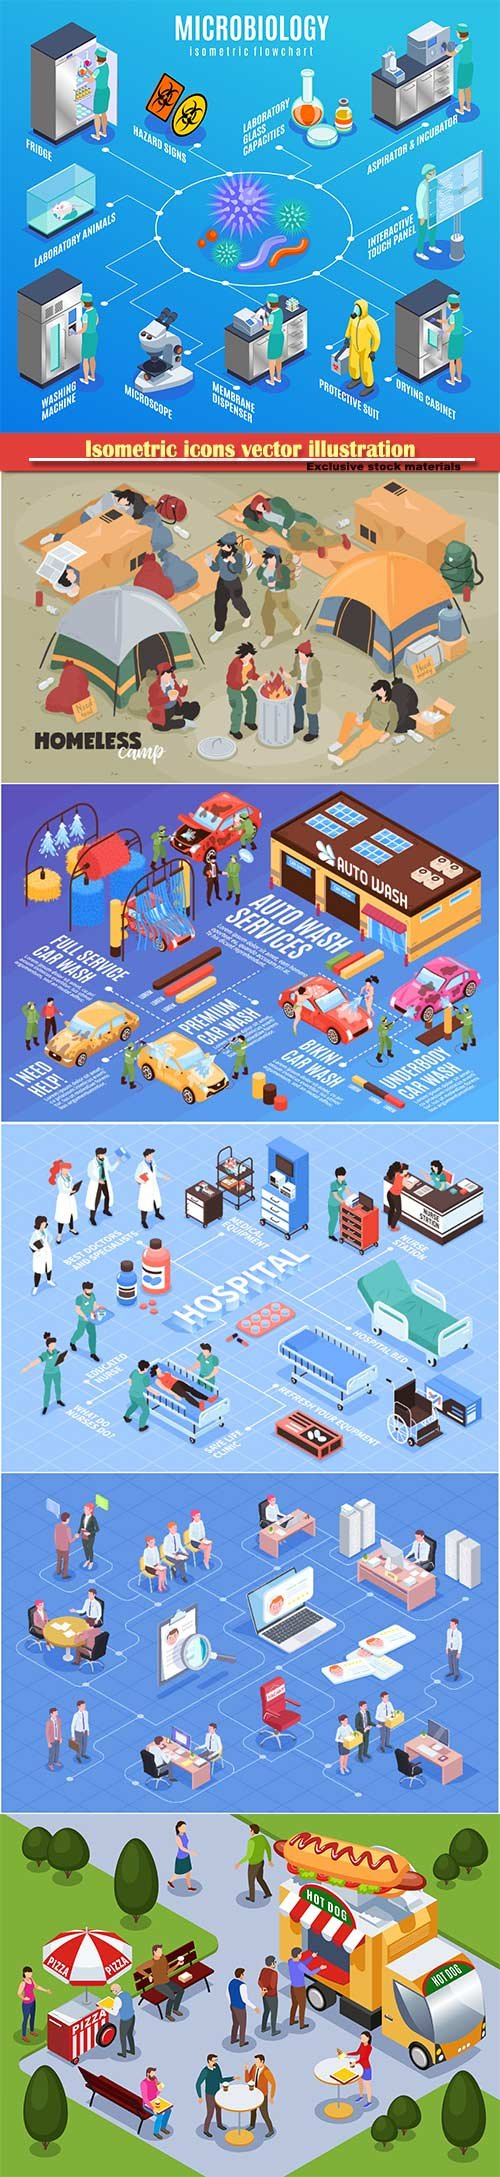 Isometric icons vector illustration, banner design template # 42